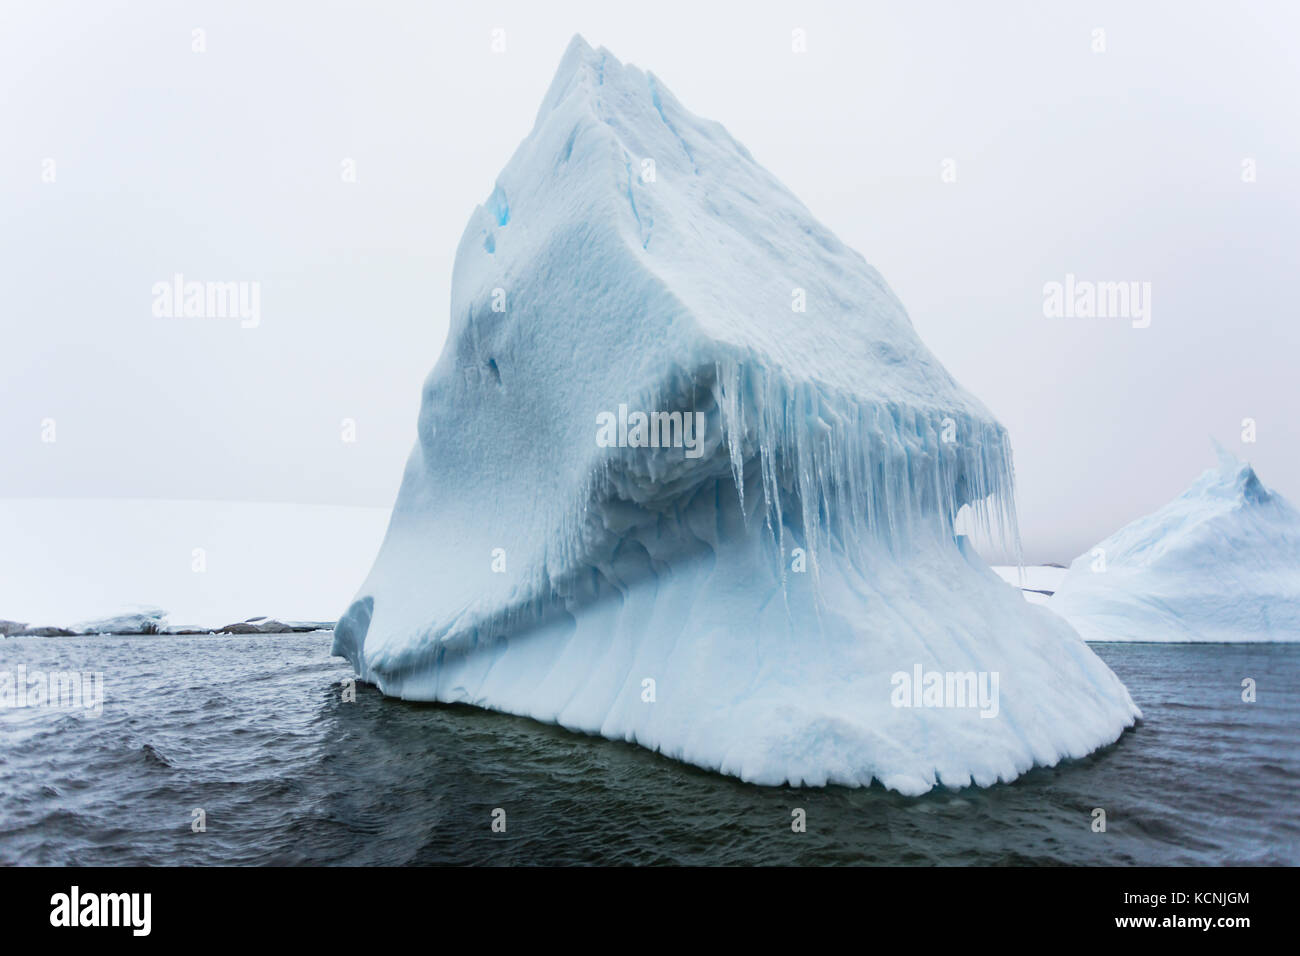 Grounded icebergs create beautiful designs as they slowly disintegrate into the cold waters surrounding Pleneau - Stock Image